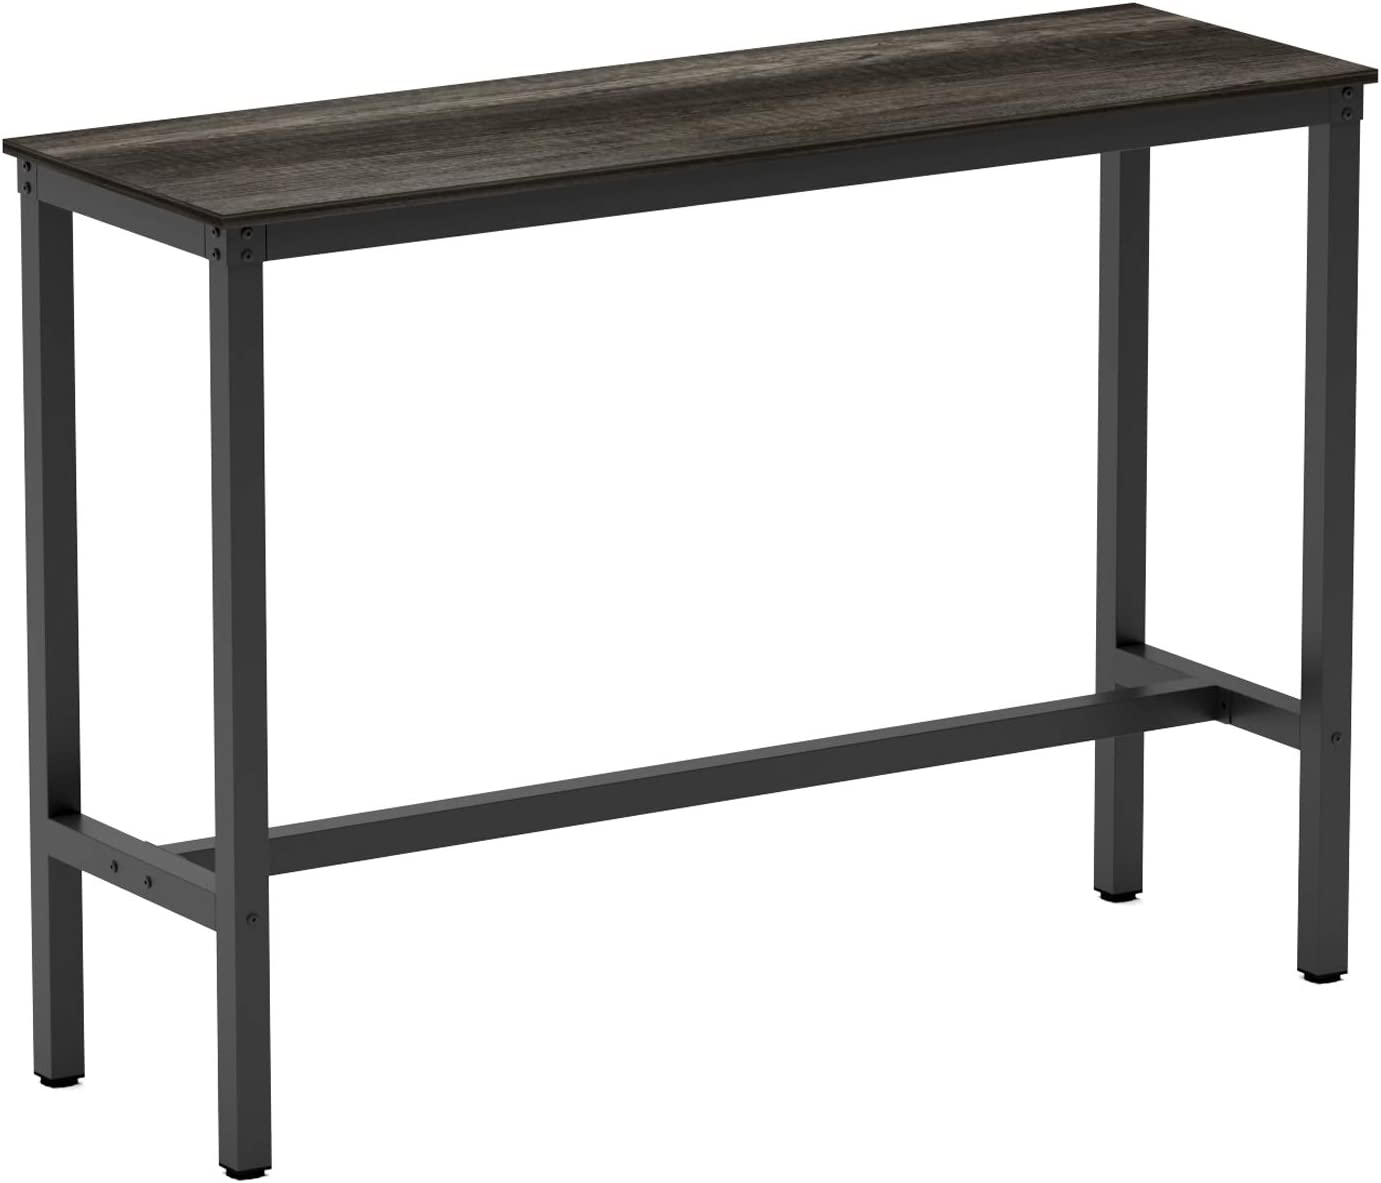 """Teraves Bar Table with Solid Metal Frame,Counter Height Dining Table Kitchen Bar Table for Dining Room,Living Room (39.37"""", Black Oak): Kitchen & Dining"""